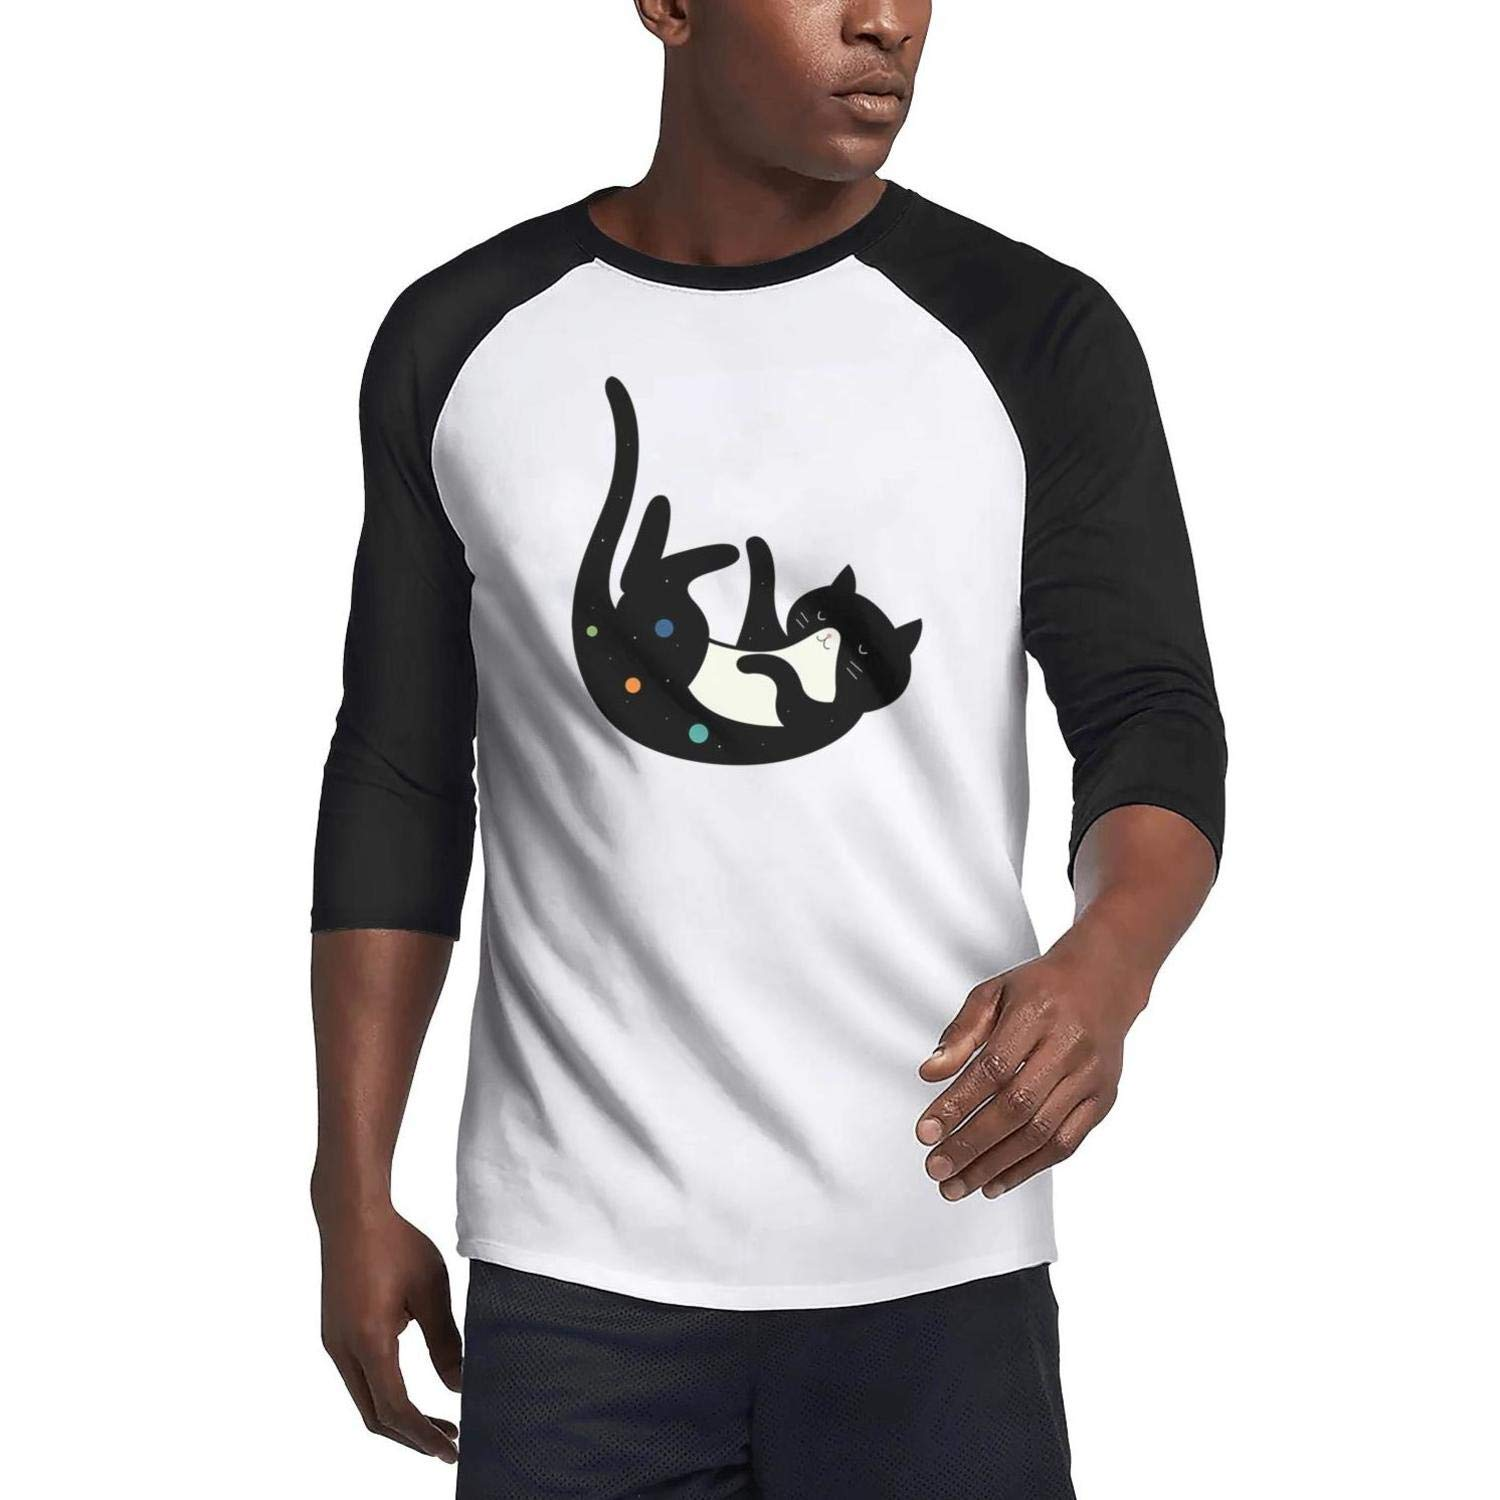 Adult Teeshirt Black cat Sweatshirt Close 3//4 Sleeve Raglan Lightweight Tshirts